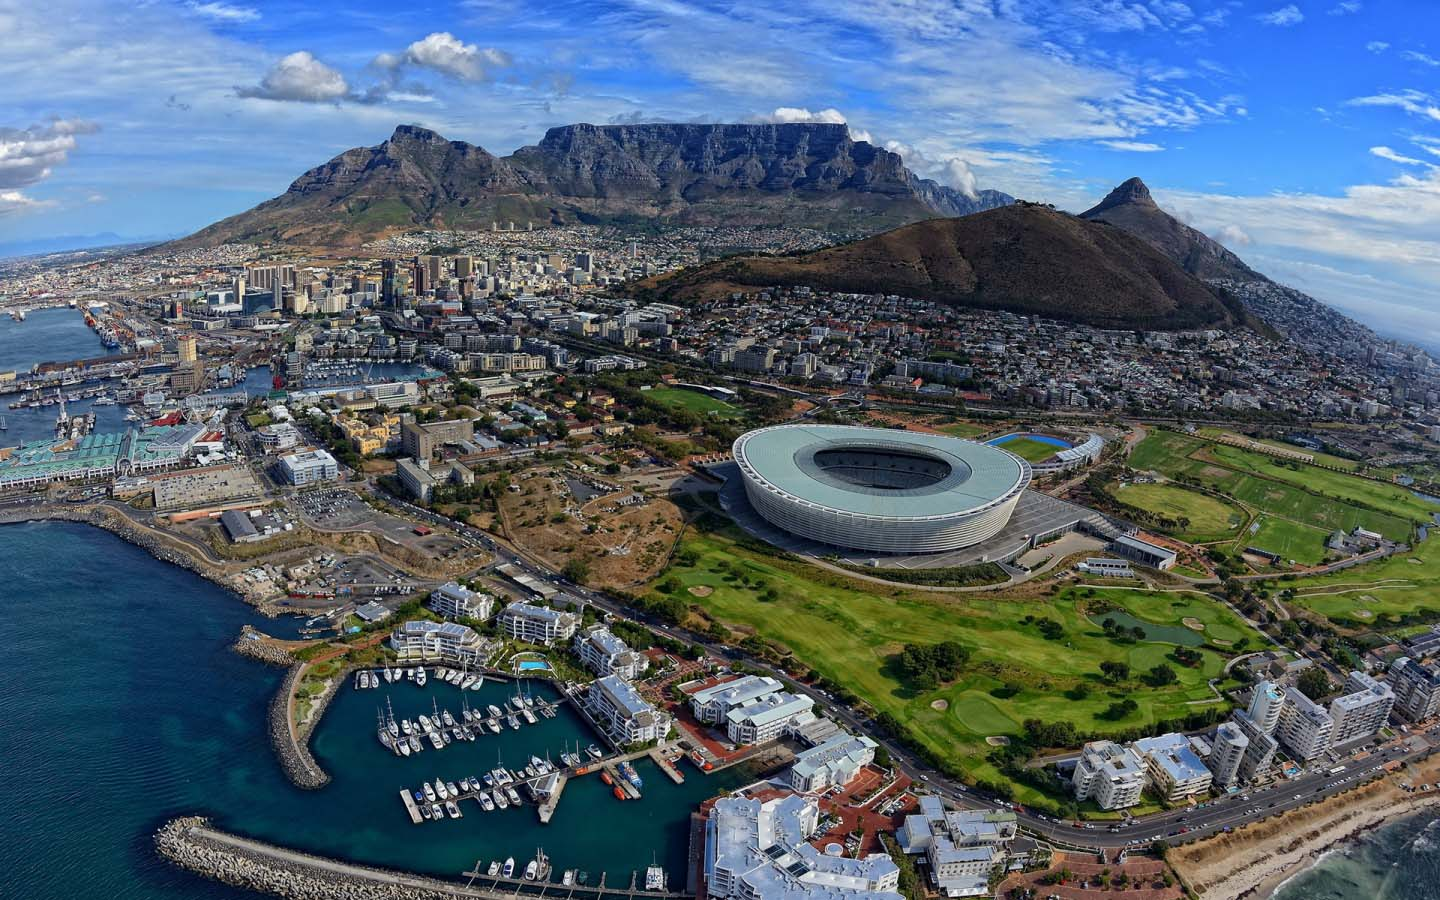 Along with the Indian cricket team, South African Tourism is also hoping to welcome cricket fans and capitalise on tourism